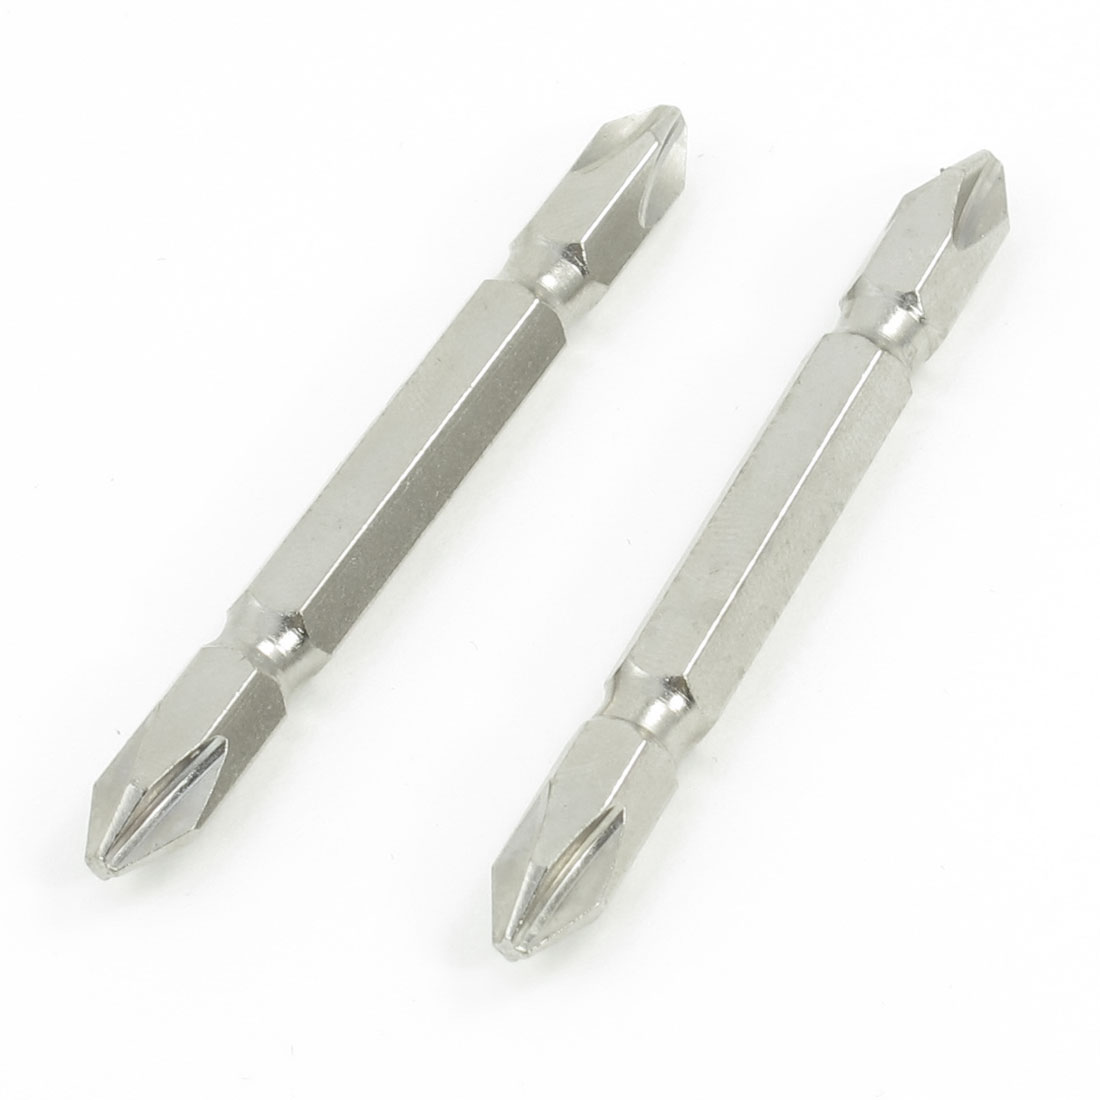 2 Pcs Silver Tone Double Ends 2.5mm Magnetic Tip PH2 Screwdriver Bits